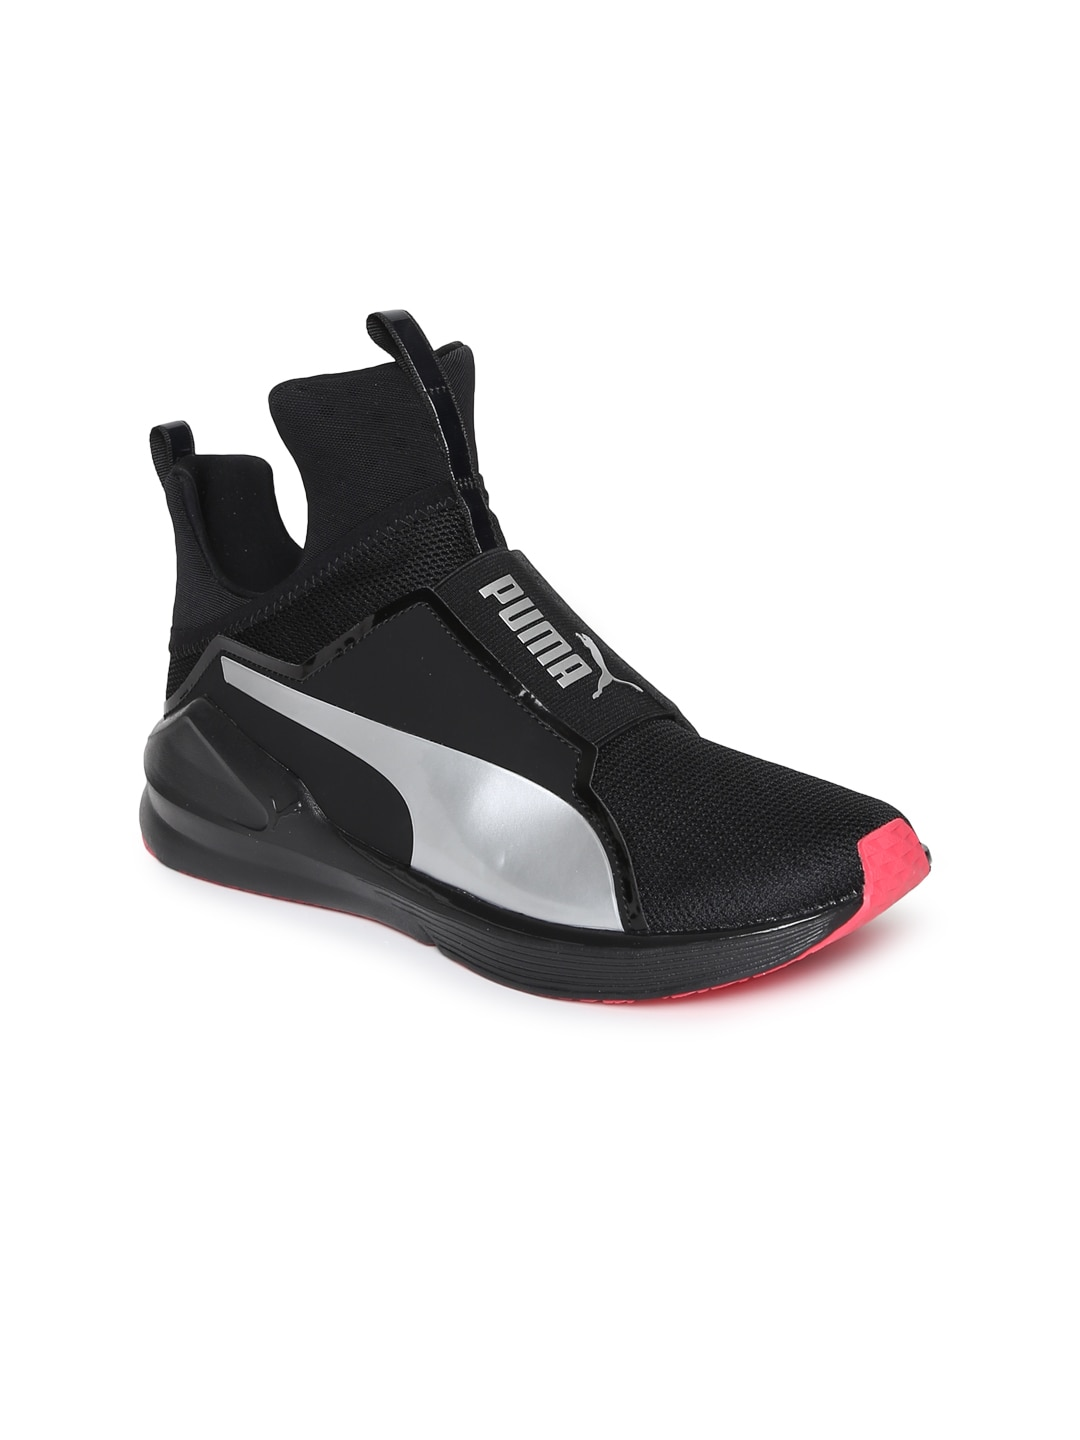 09d01090b9ae Puma® - Buy Orignal Puma products in India